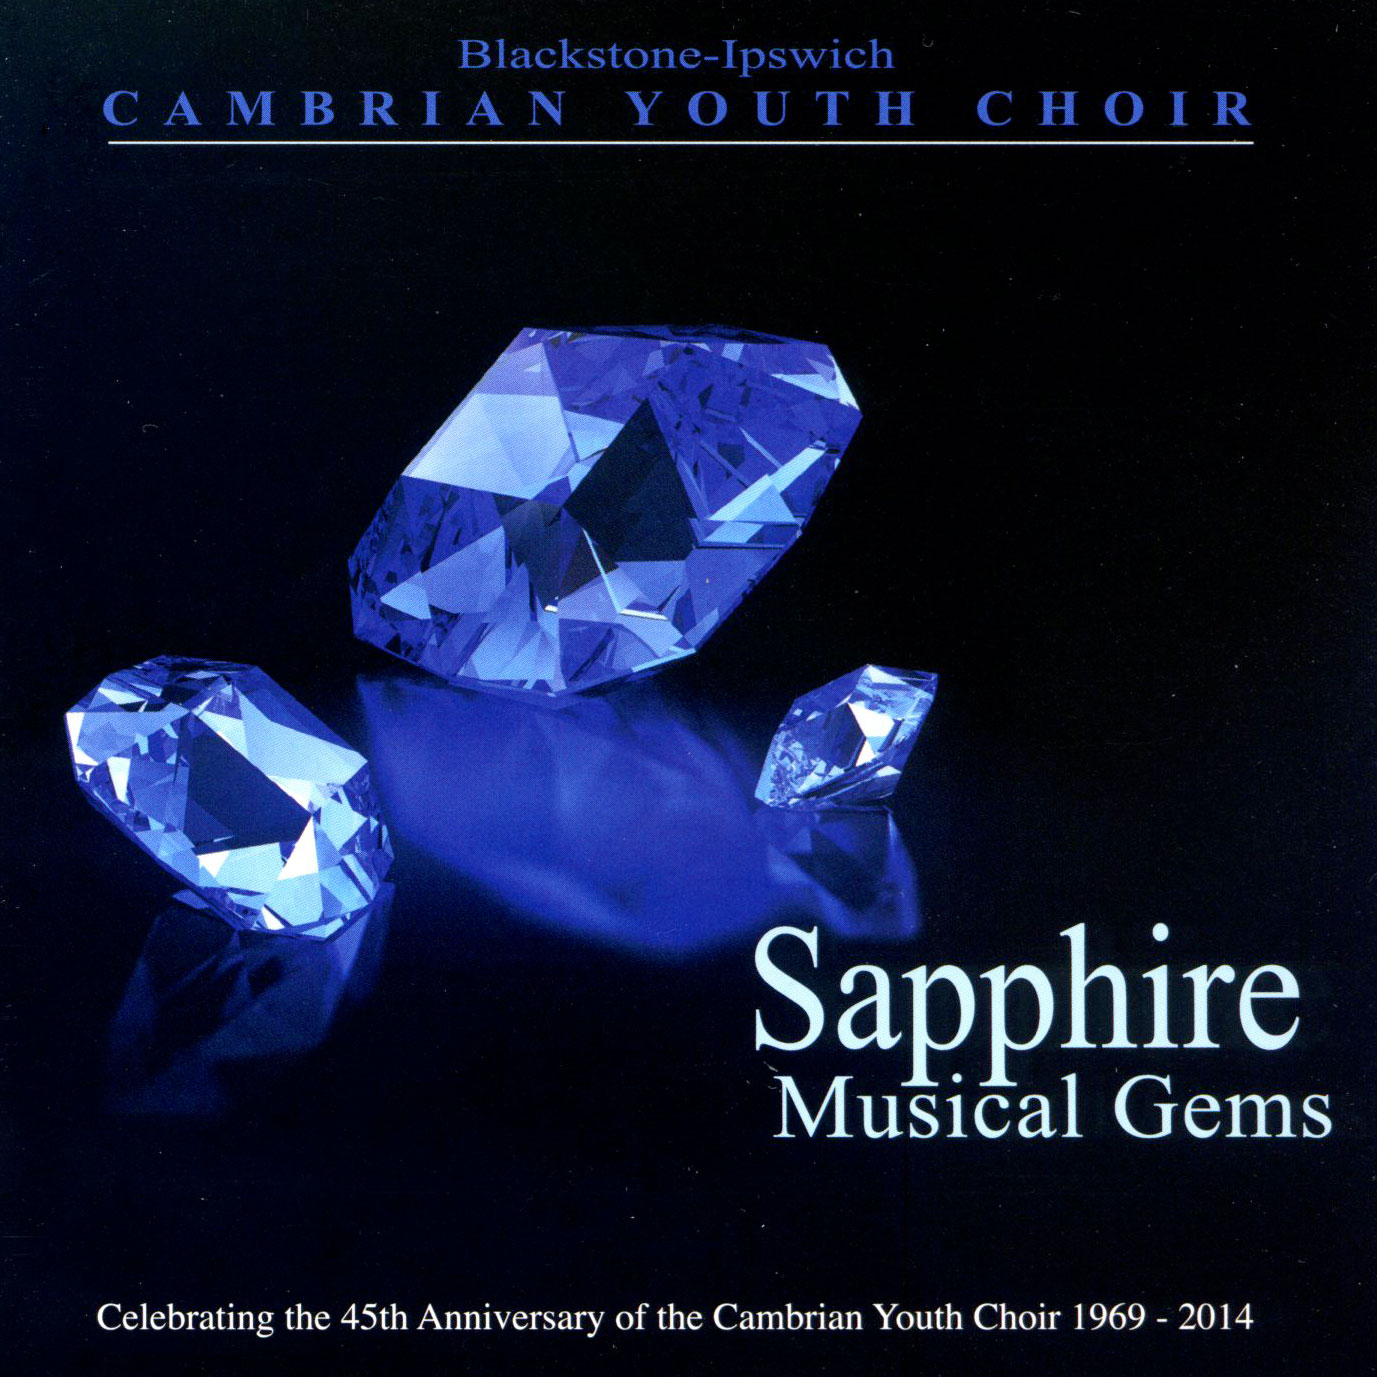 CD Recordings - Sapphire Musical Gems